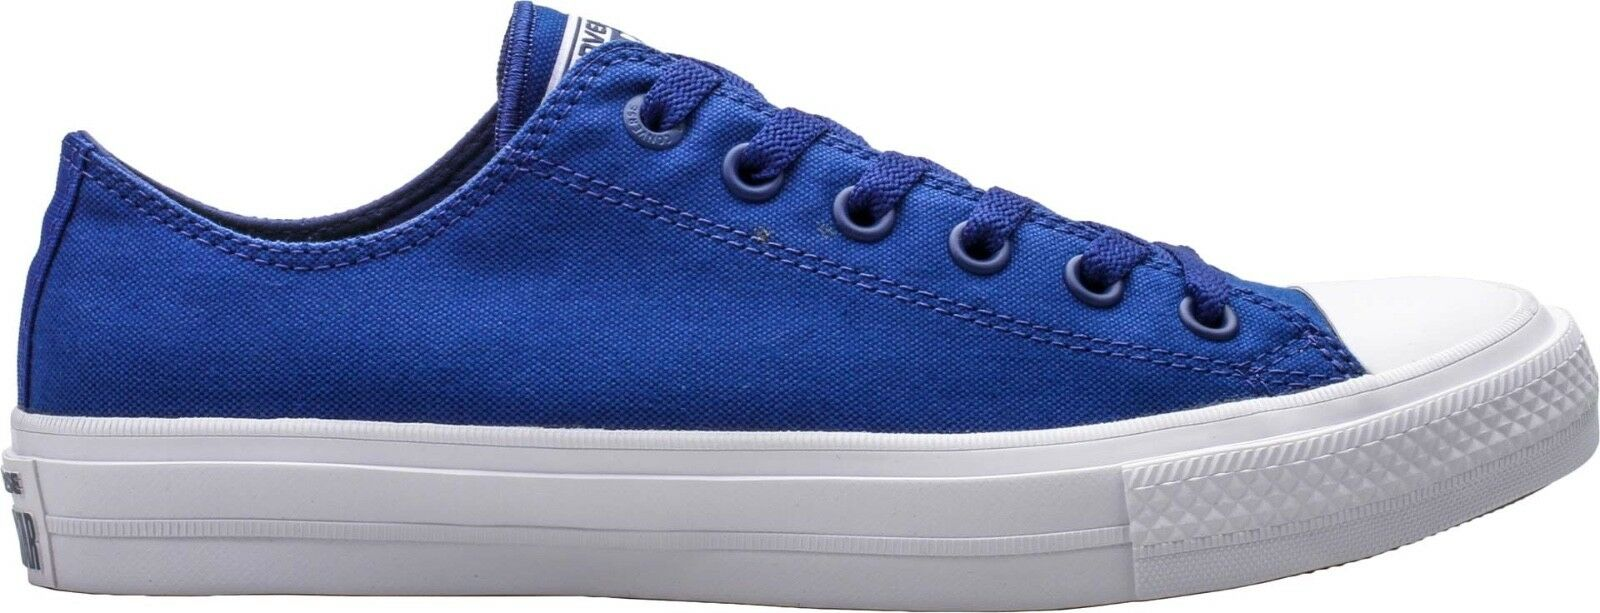 hommes Brand New Converse CT II OX Sodalite Athletic Fashion Sneakers [150152C]